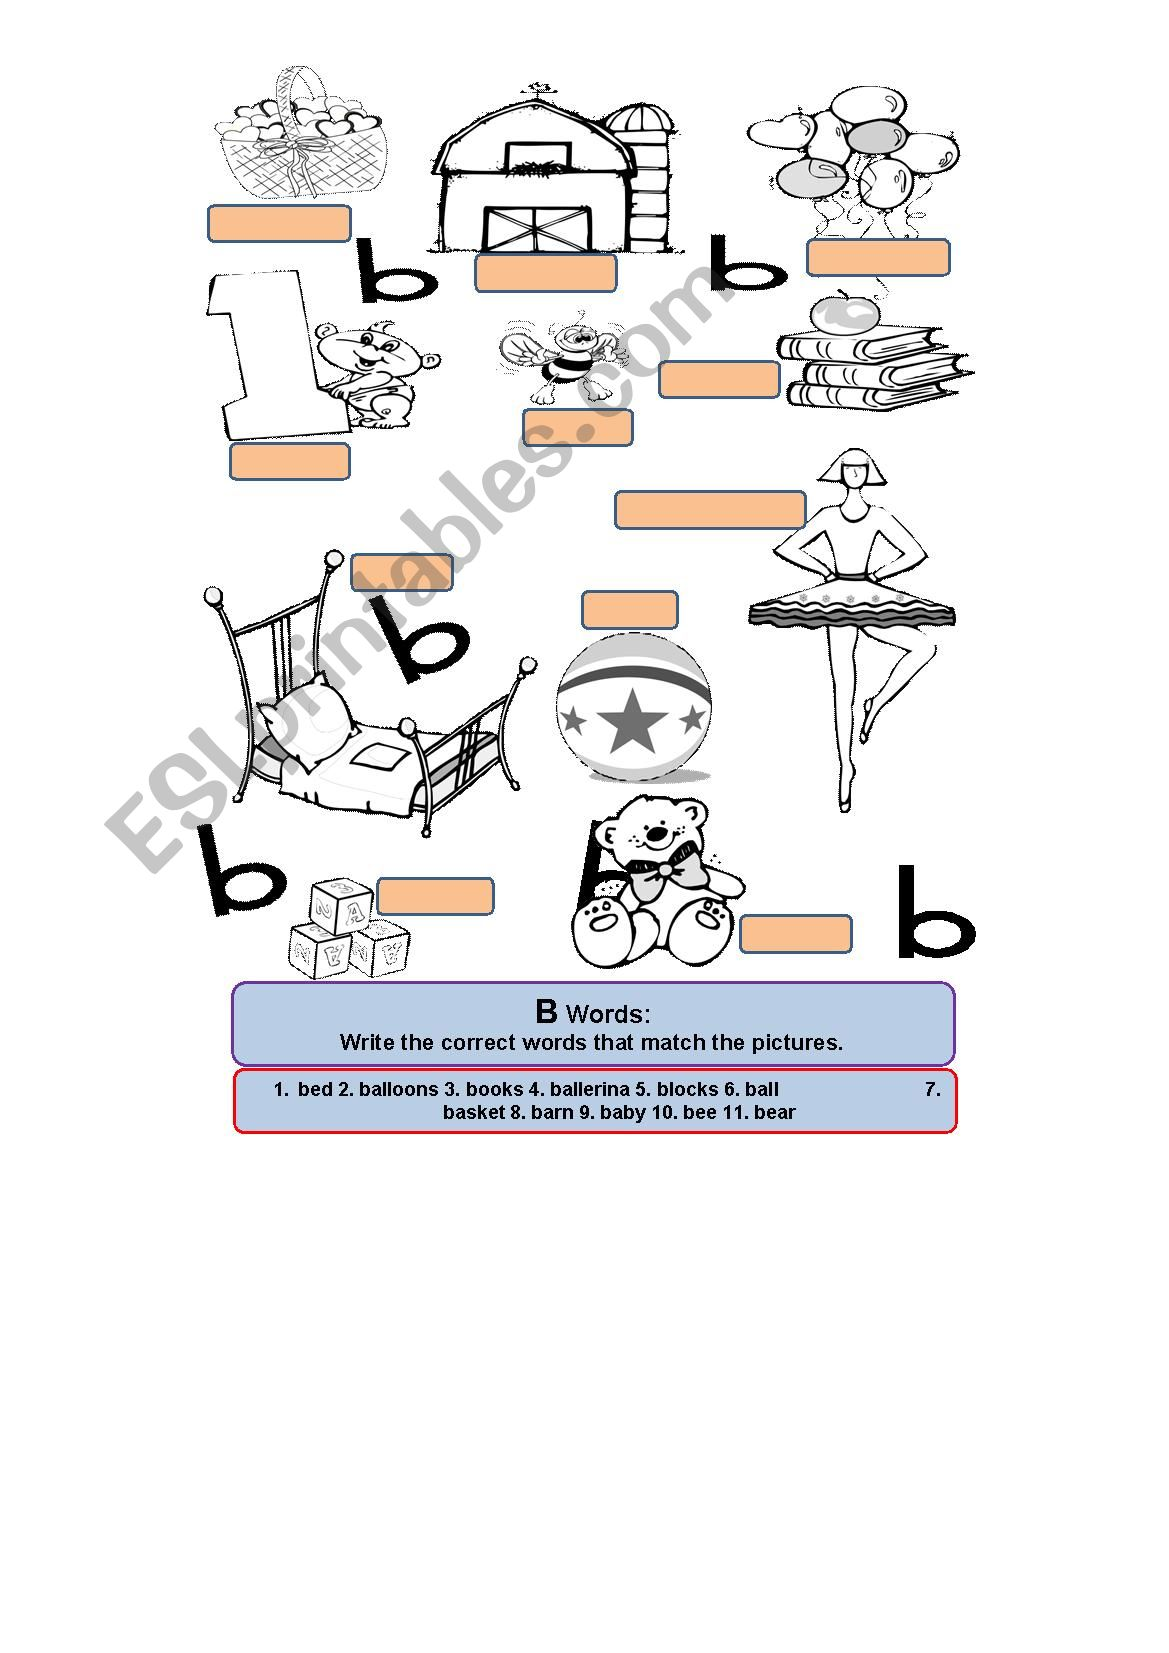 B Words Worksheet